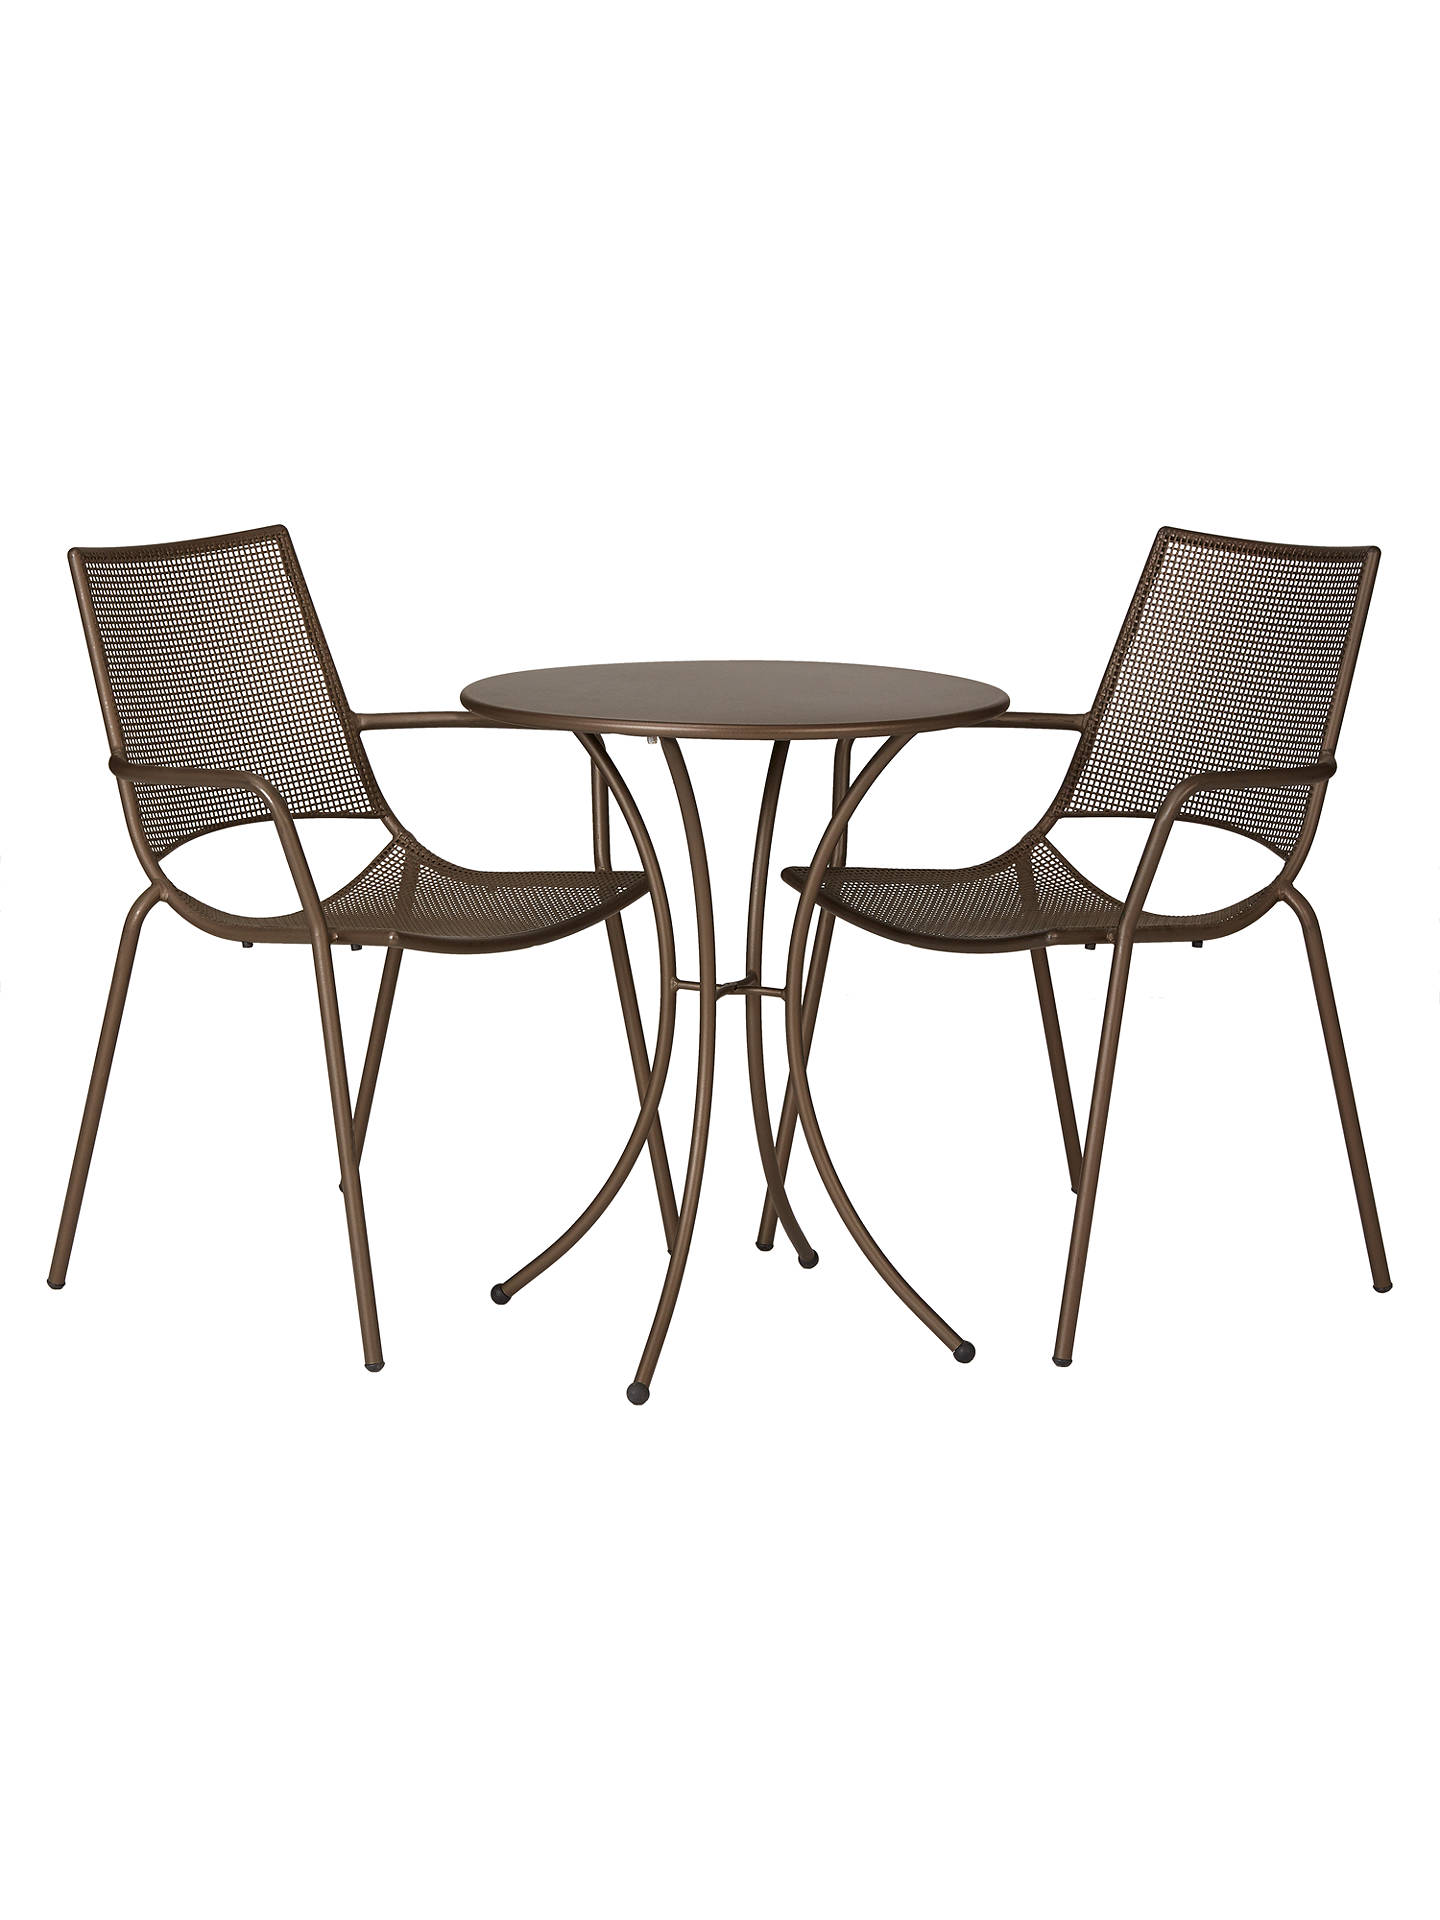 2d88d68c3729 Buy John Lewis & Partners Ala Mesh Garden Table and Chairs Bistro Set,  Bronze Online ...